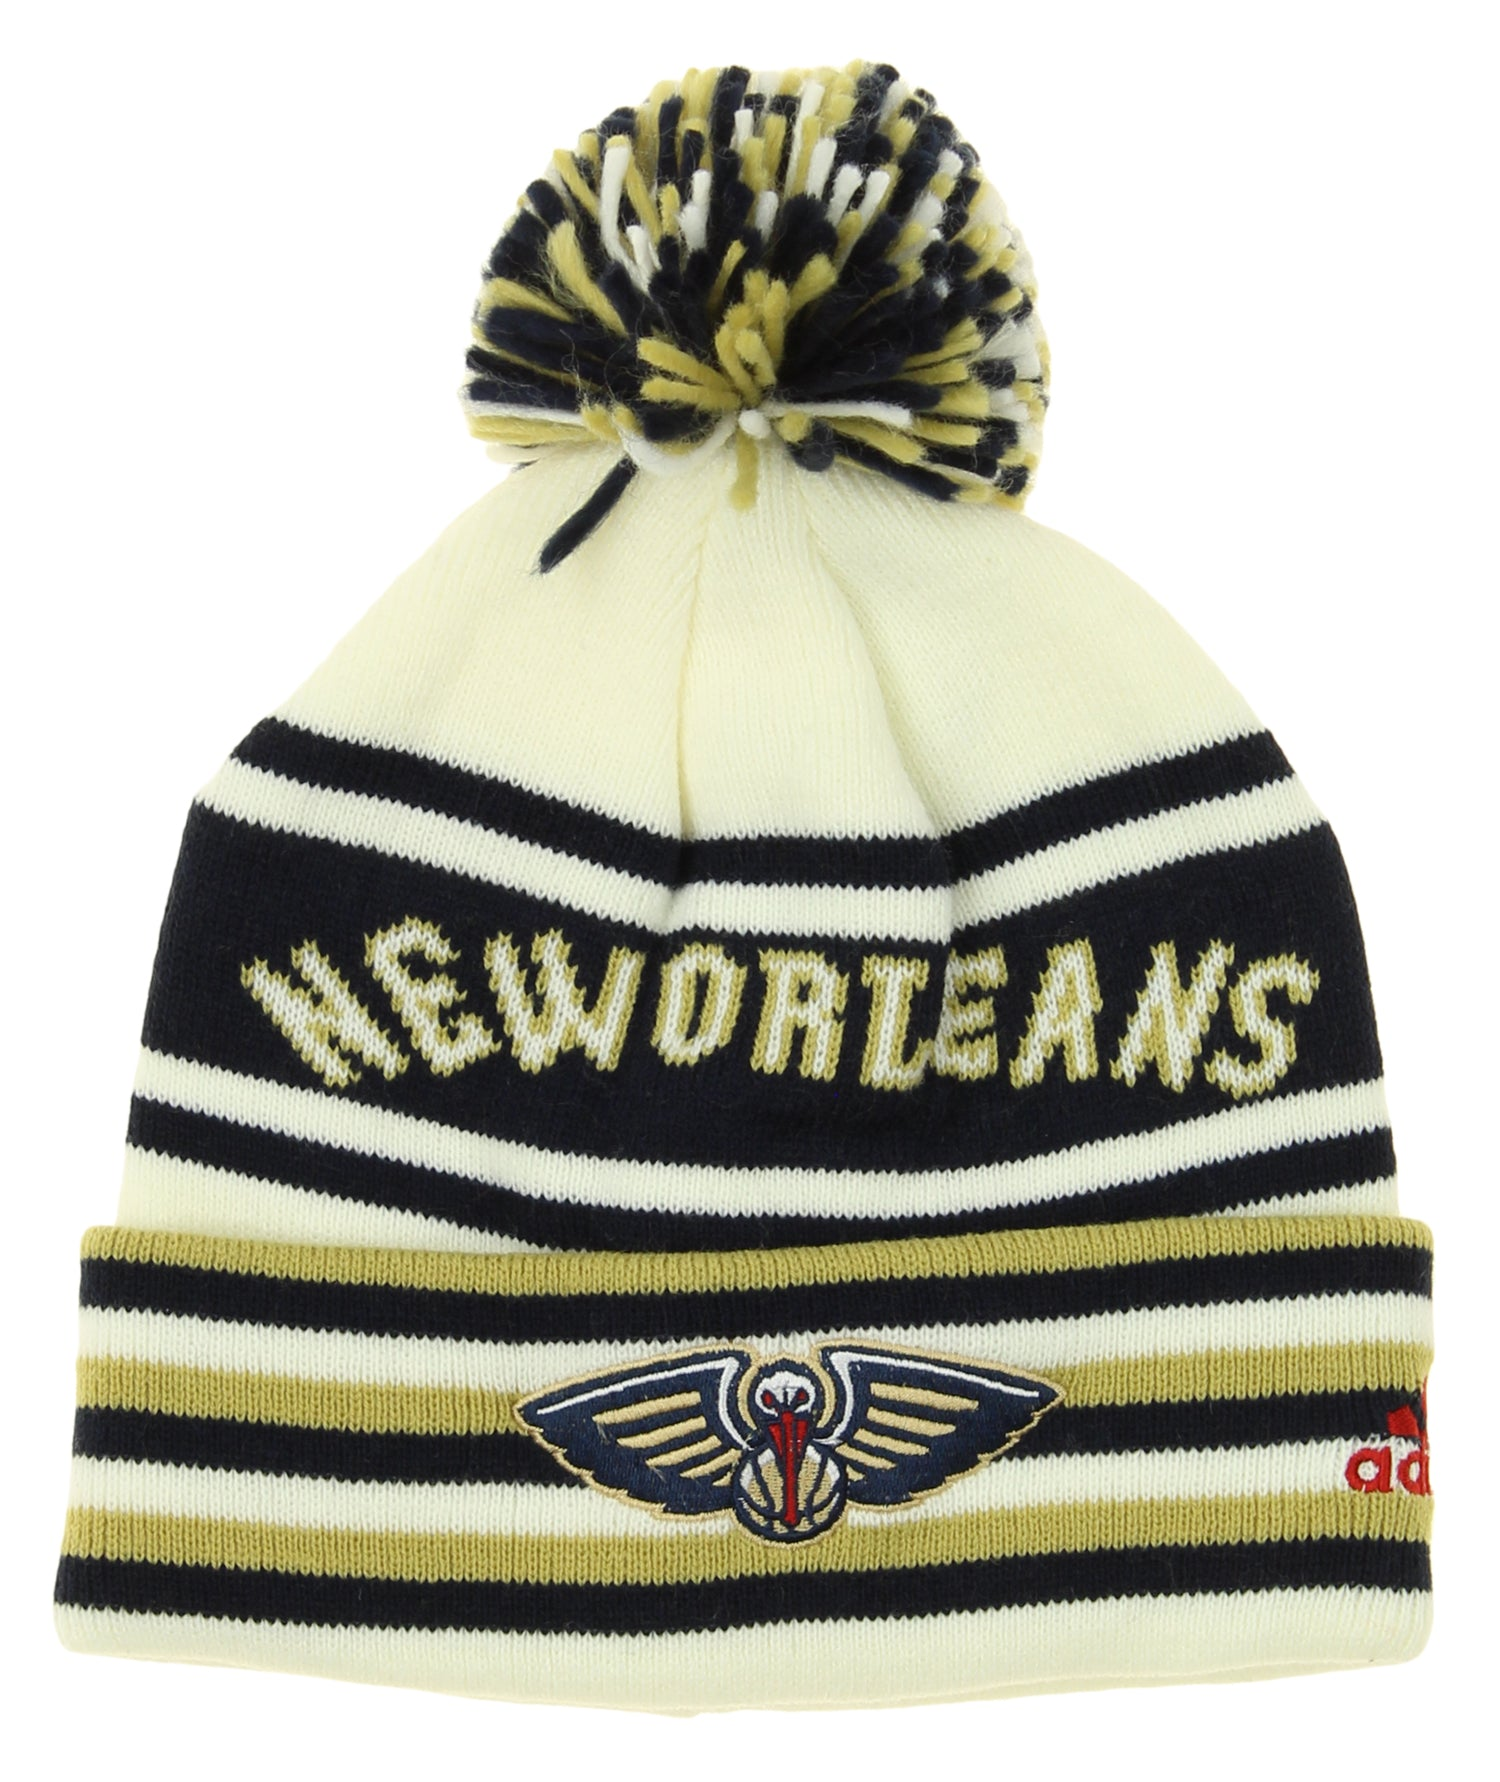 Adidas Nba Youth New Orleans Pelicans Cuffed Knit Beanie With Pom Hat Osfm